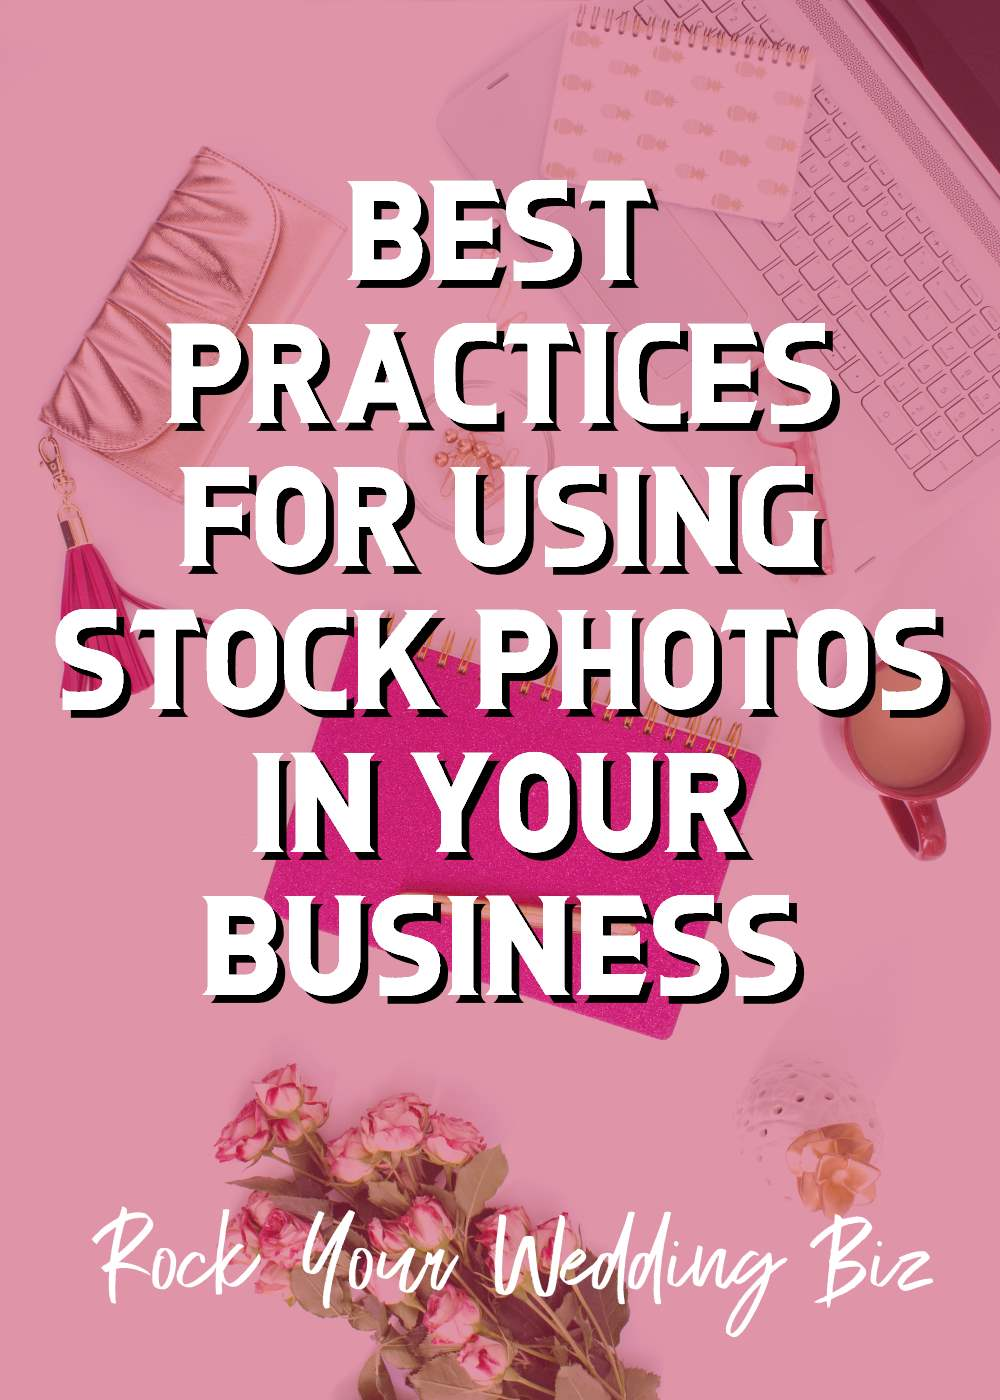 Episode 44: Using Stock Photos for Your Business